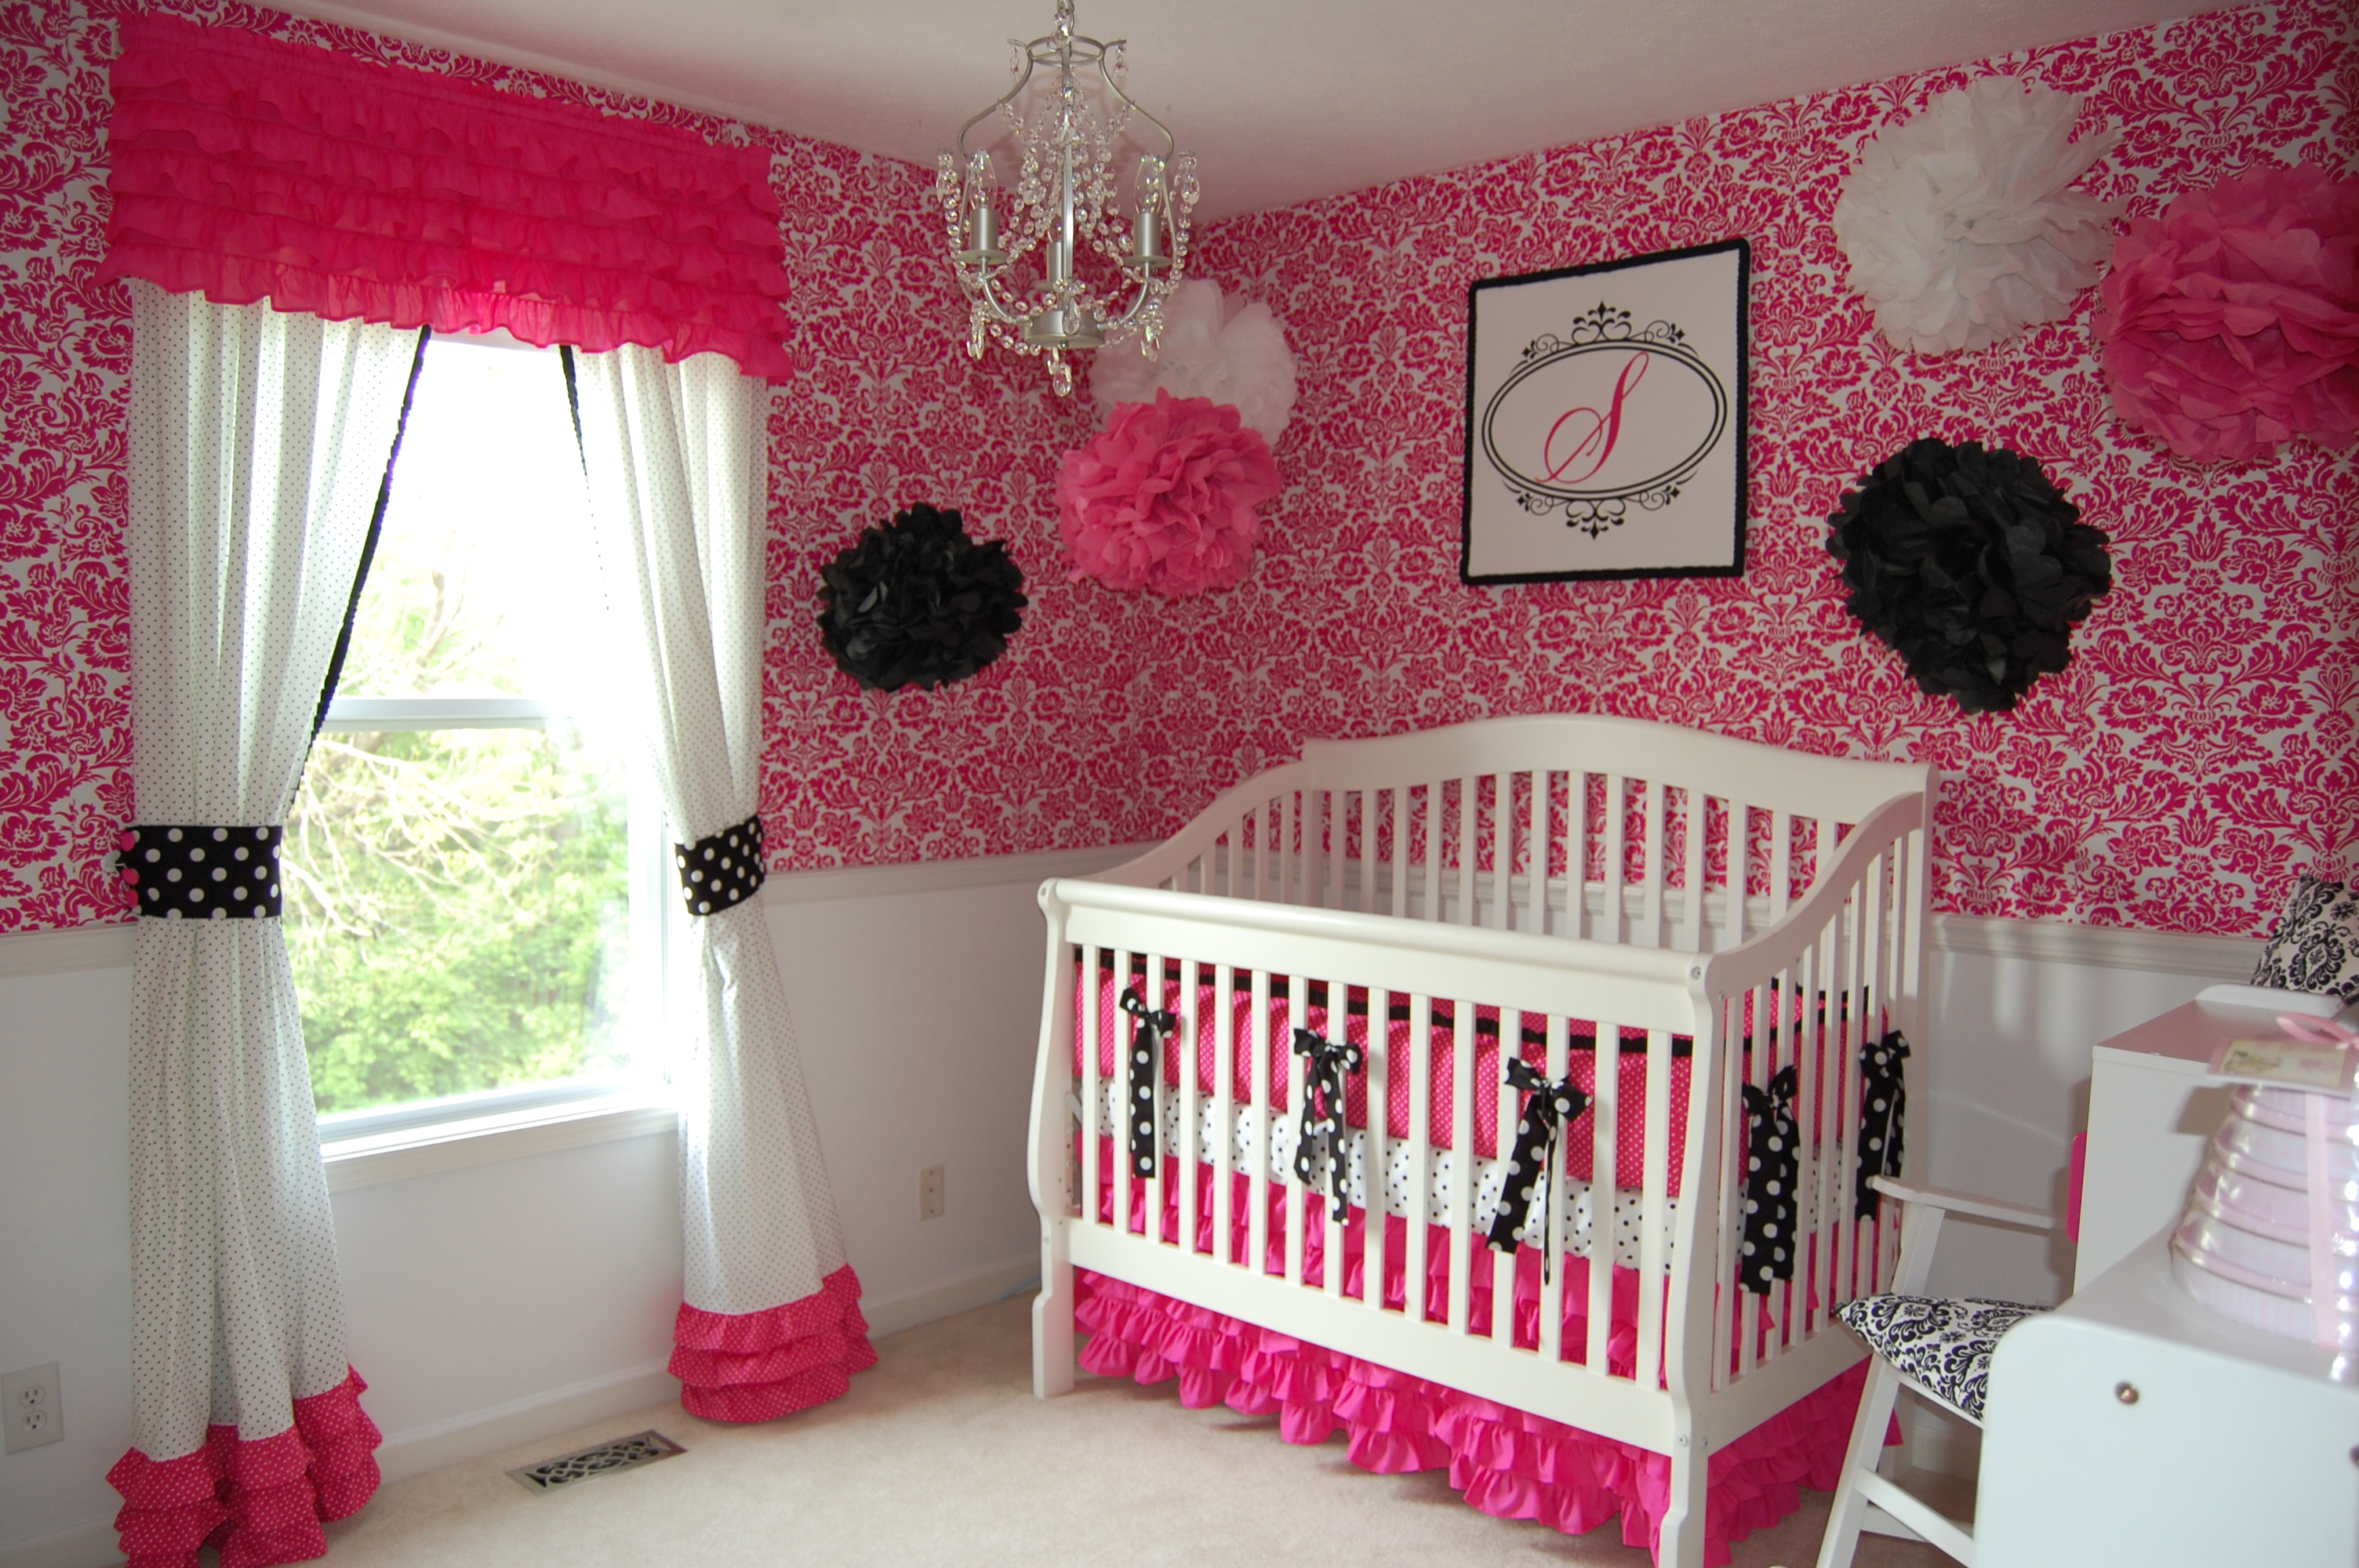 Decoration chambre petite fille for Photo decoration chambre bebe fille